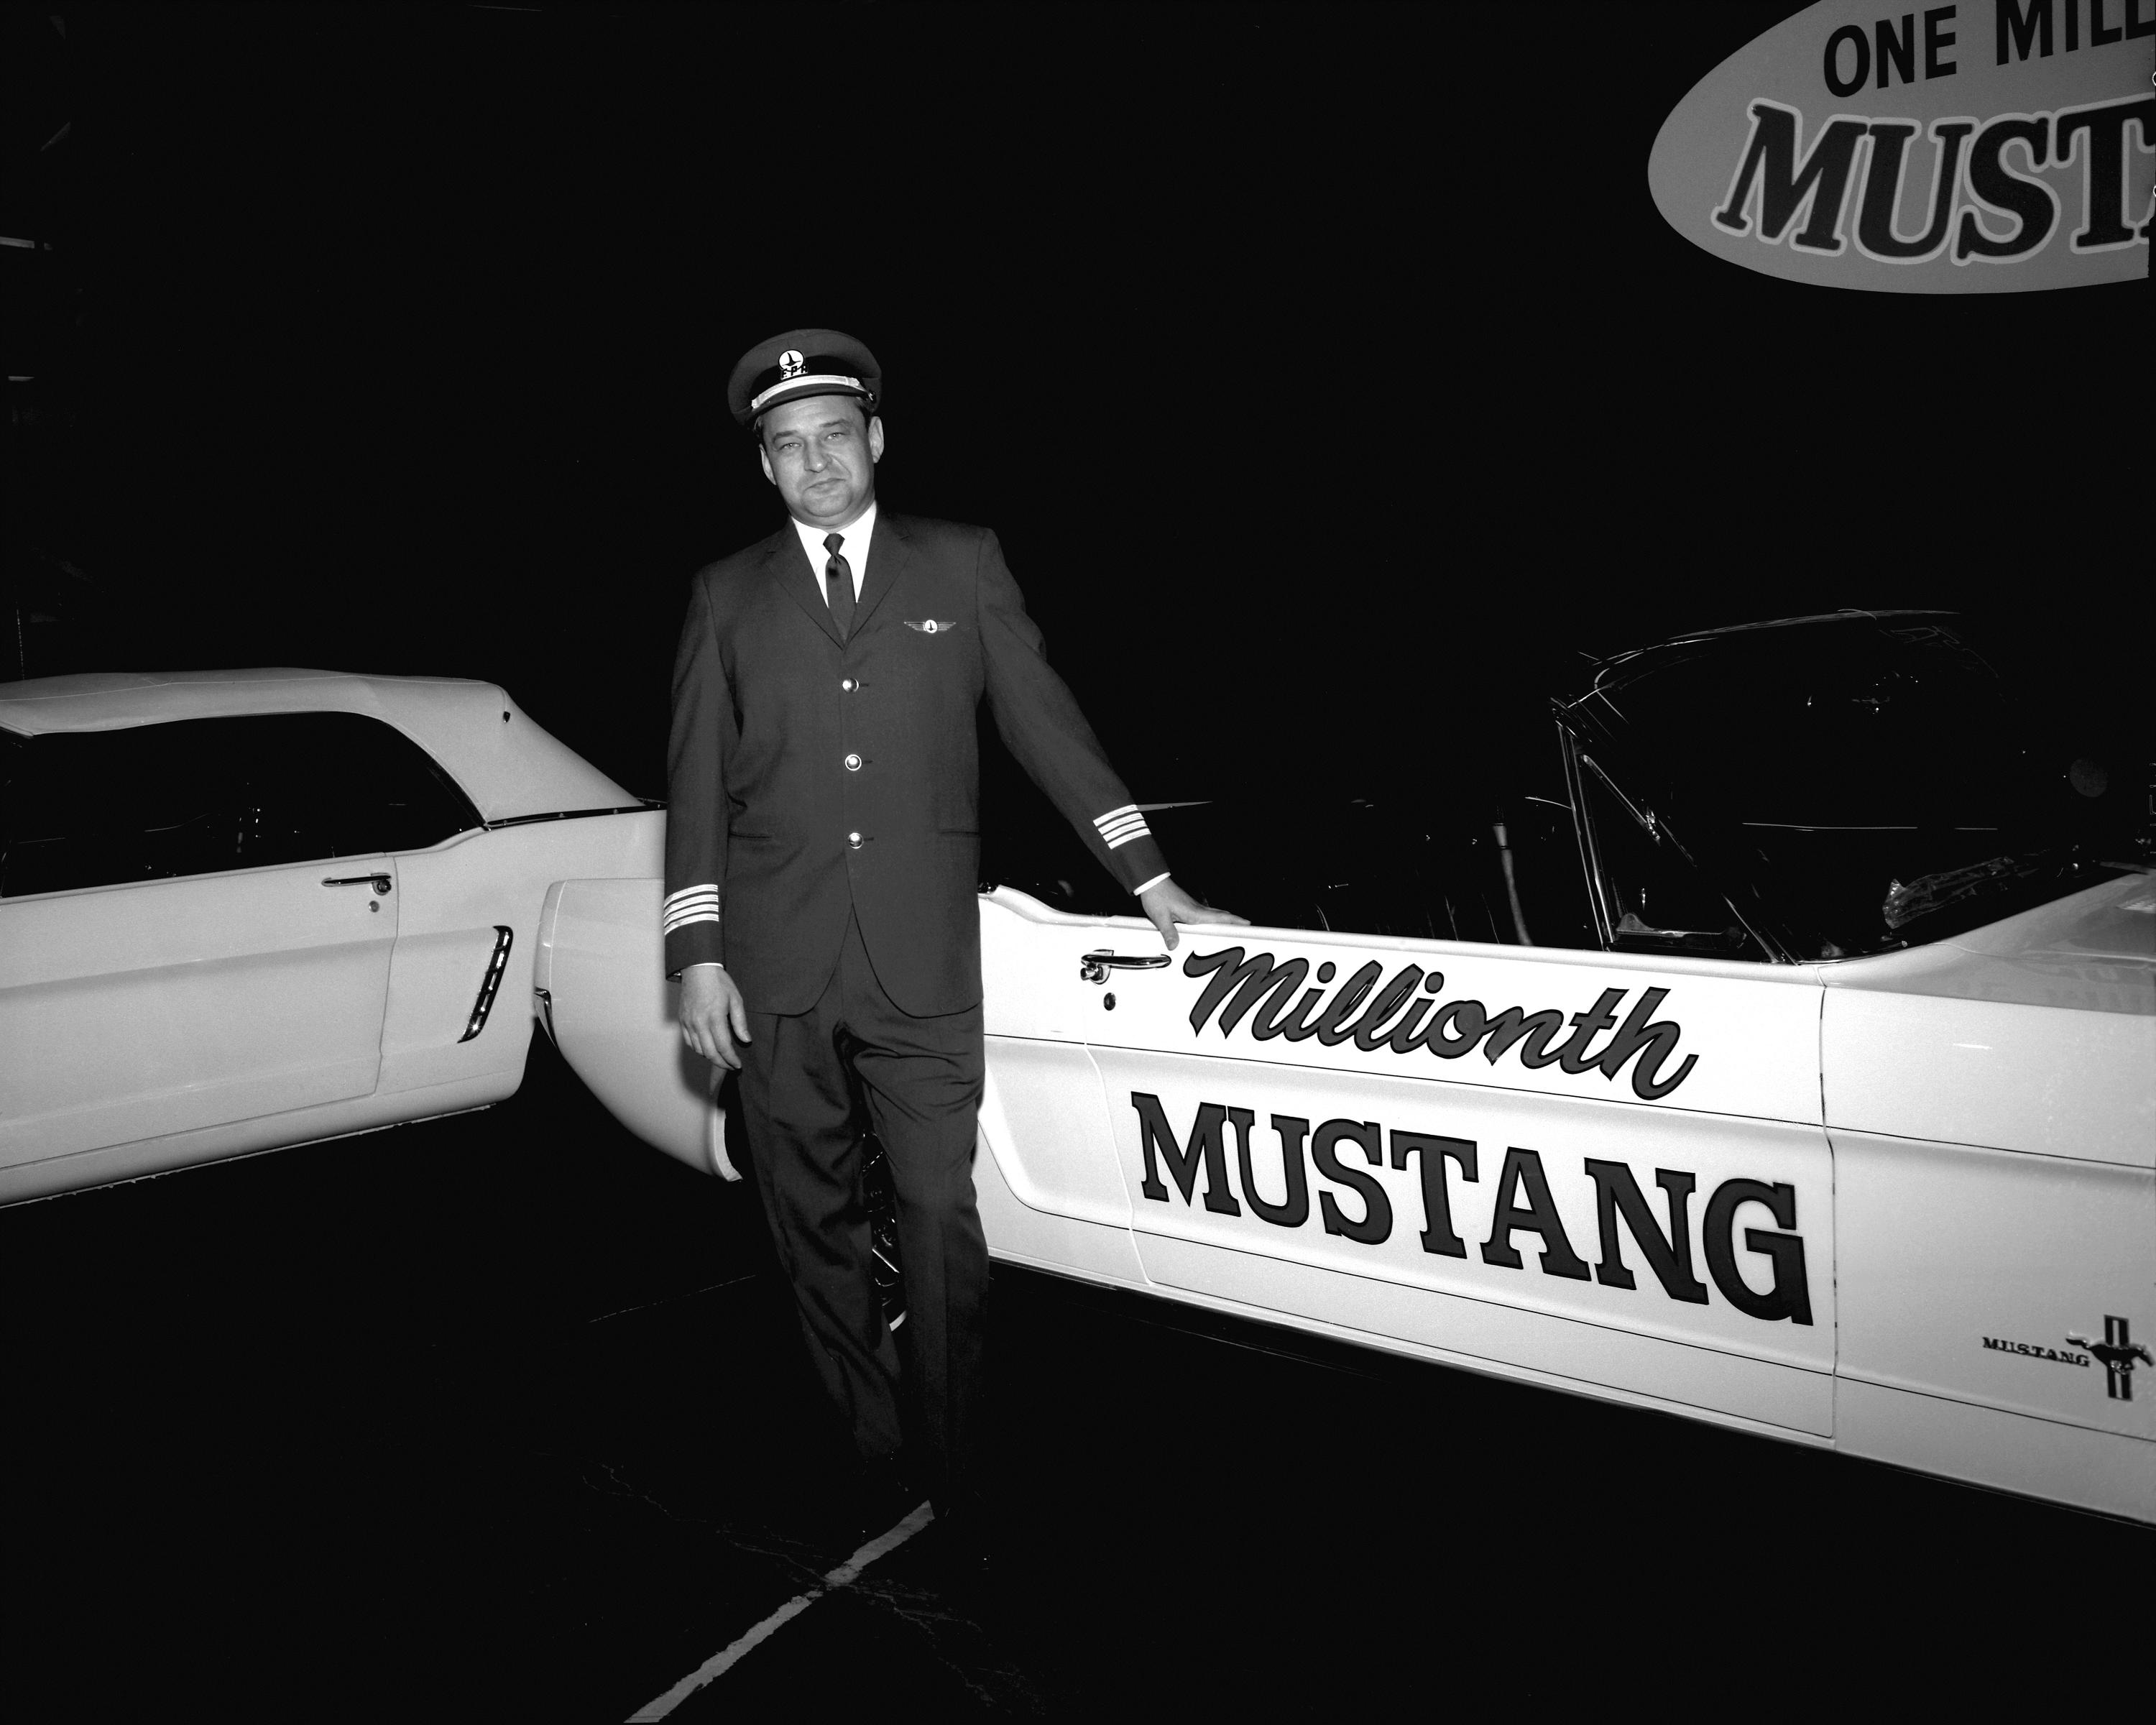 167909_6_1966_Ford_Mustang_conv_Millionth_Mustang_neg_147061-002